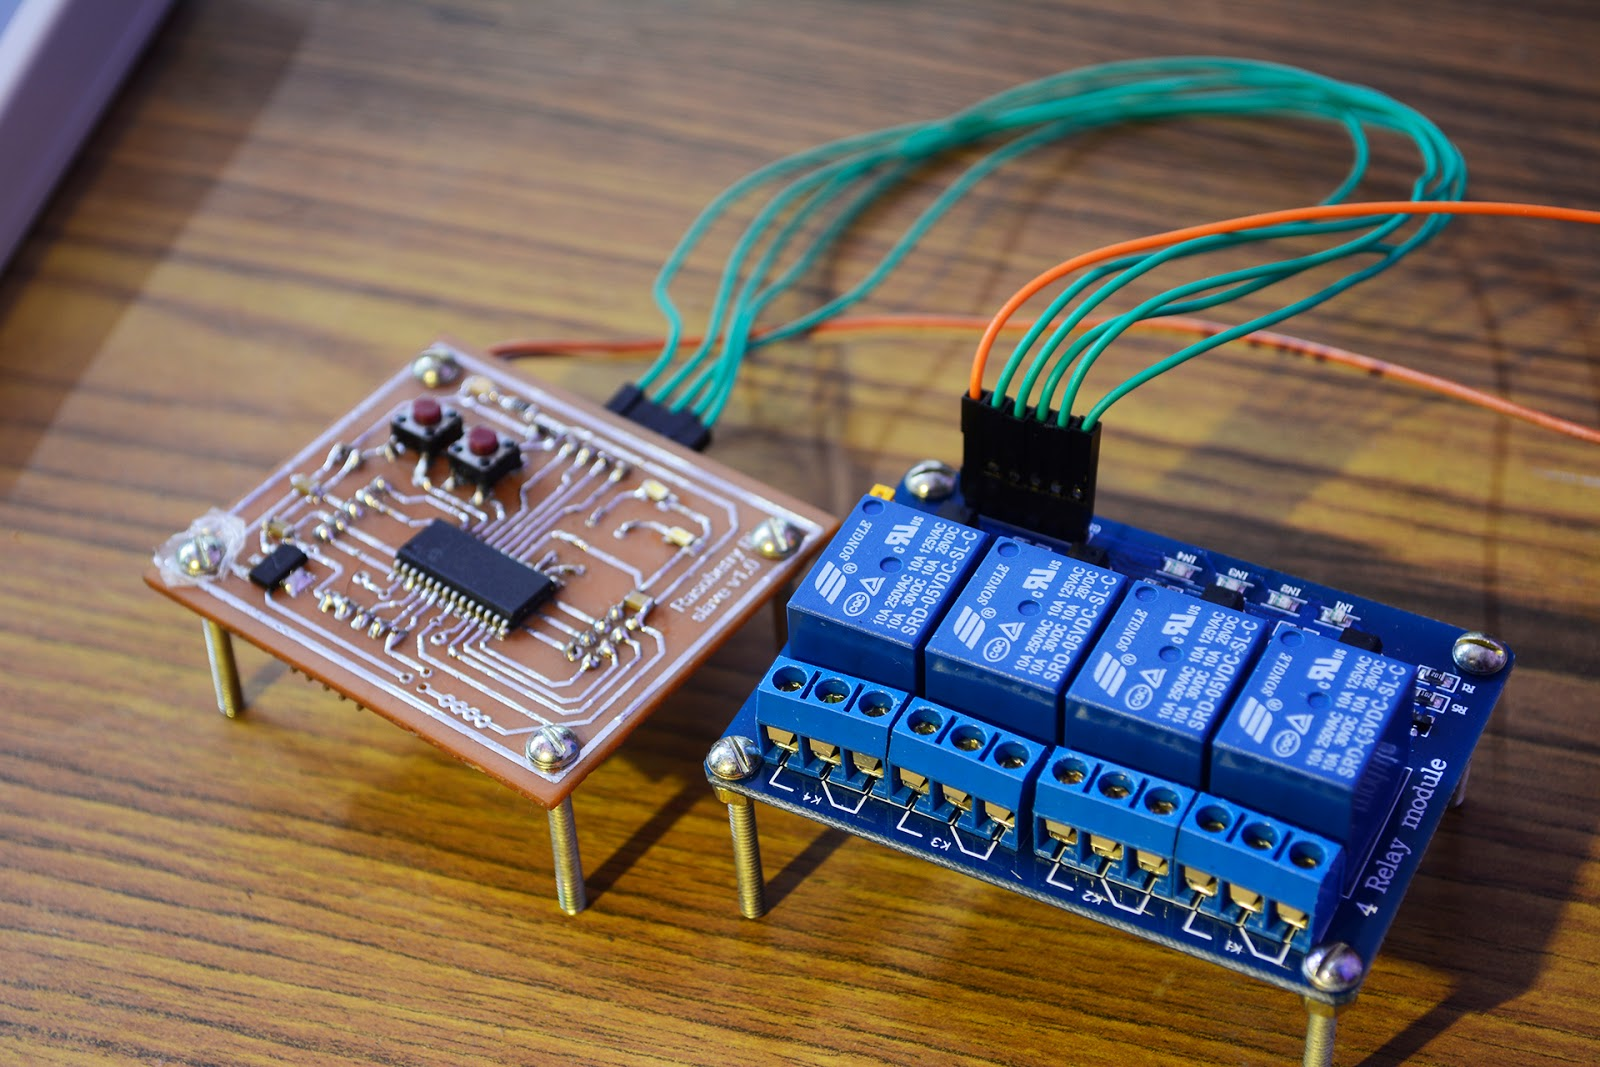 Net Embedded Sys Projects Interfacing Relay With Pic Microcontroller Using Uln2003 I Recommend Ready To Use Simple Boards It Is Very Cheap And Easy Get Wont Cost You More Than 2usdat Least In Our Area